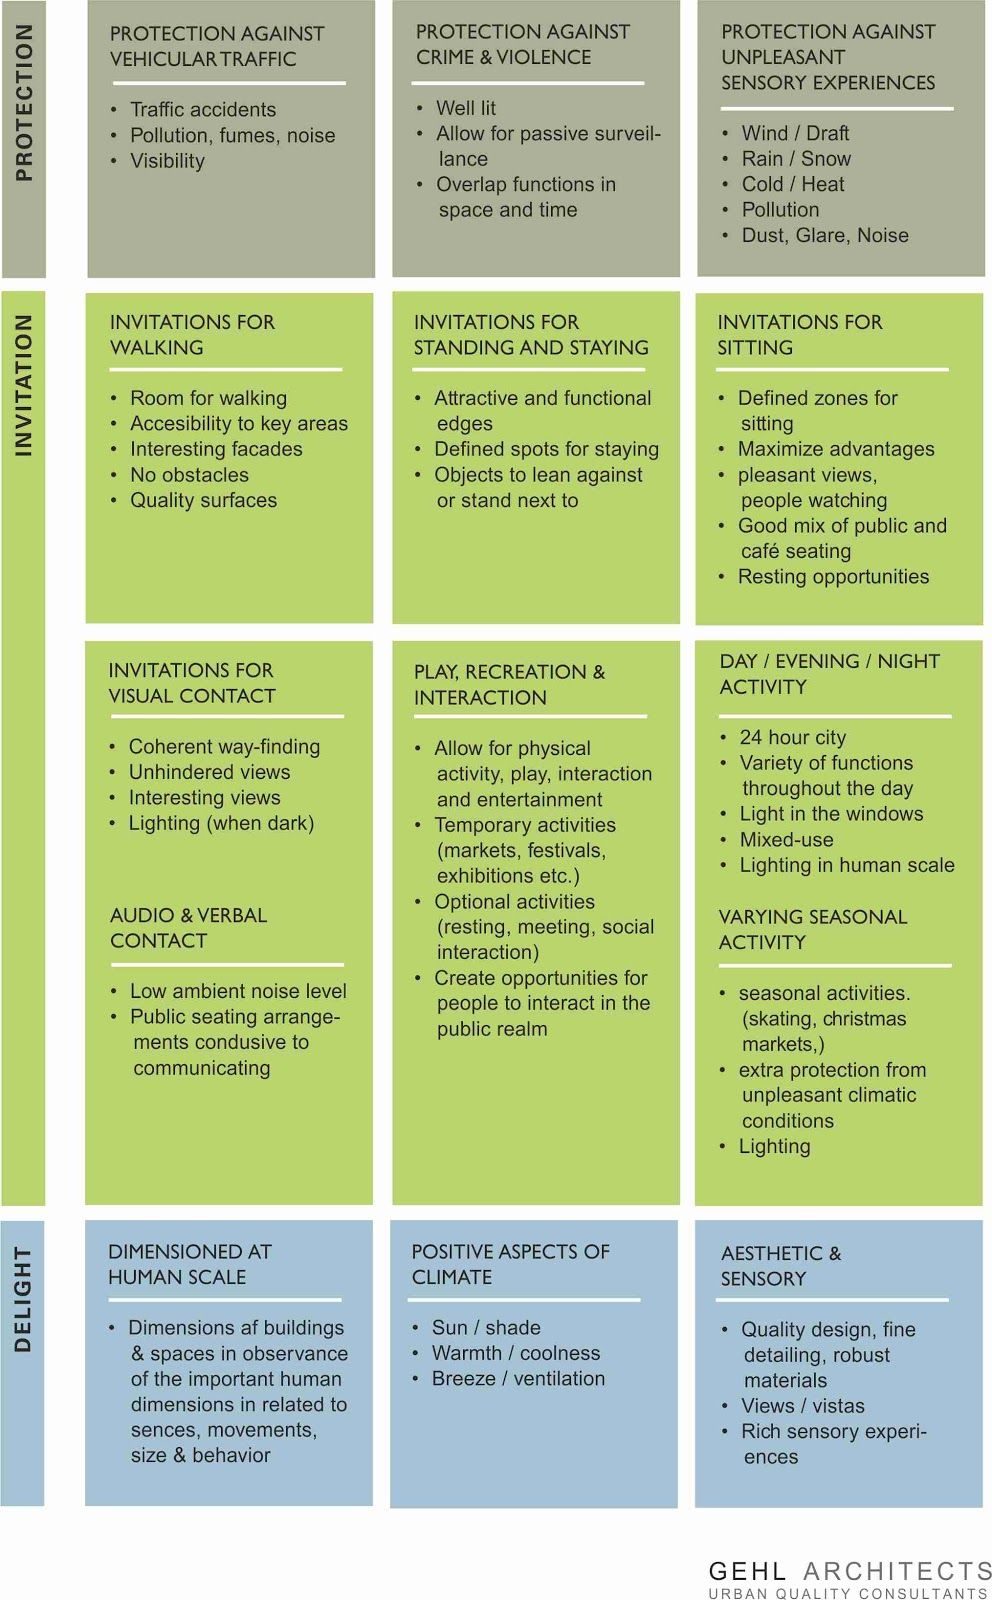 Gehl Architects Checklist Of 12 Qualities That Public Spaces